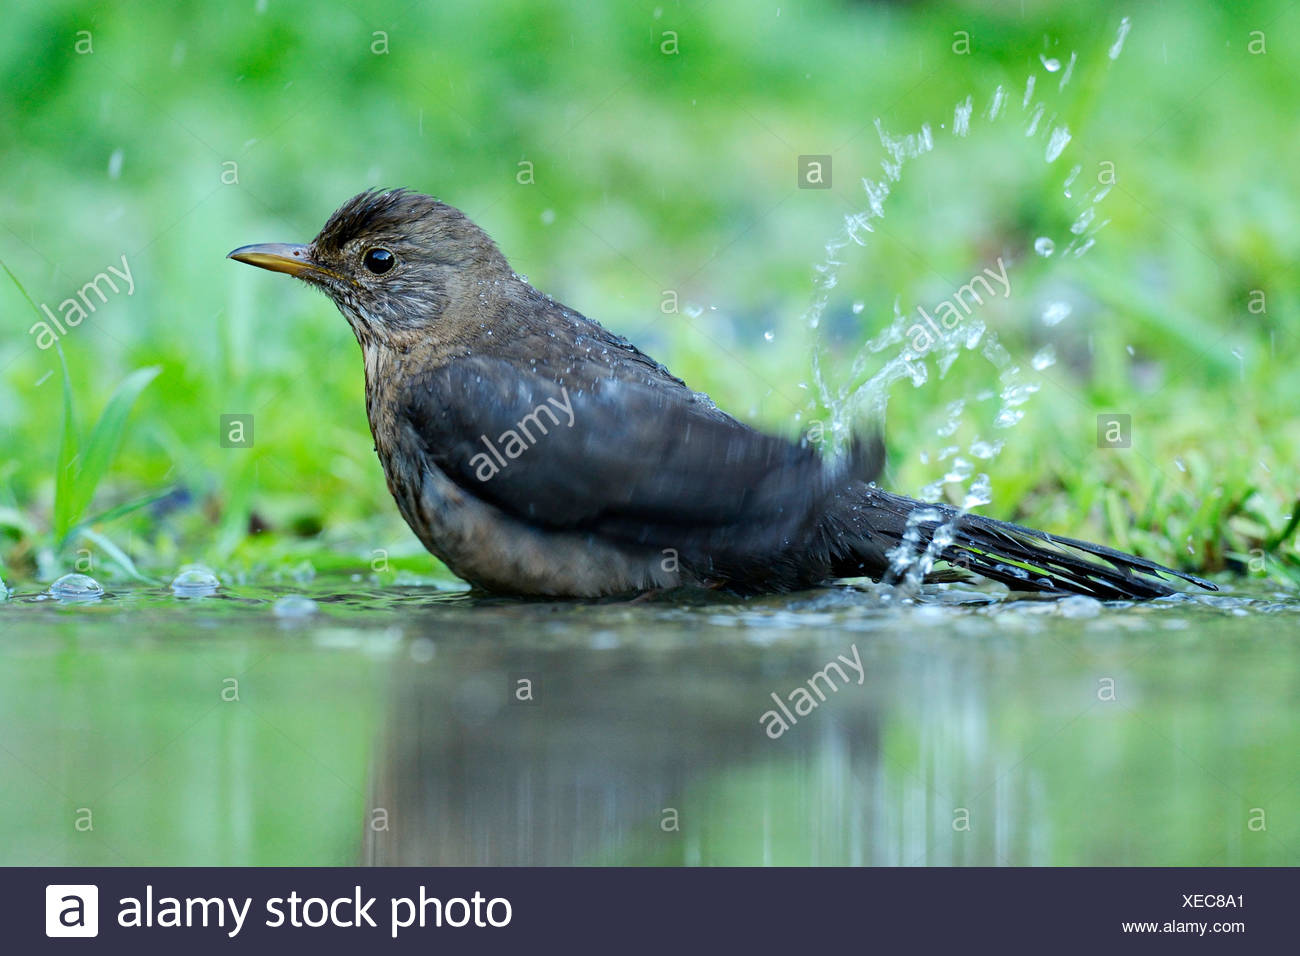 Young Blackbird (Turdus merula) bathing in a puddle - Stock Image